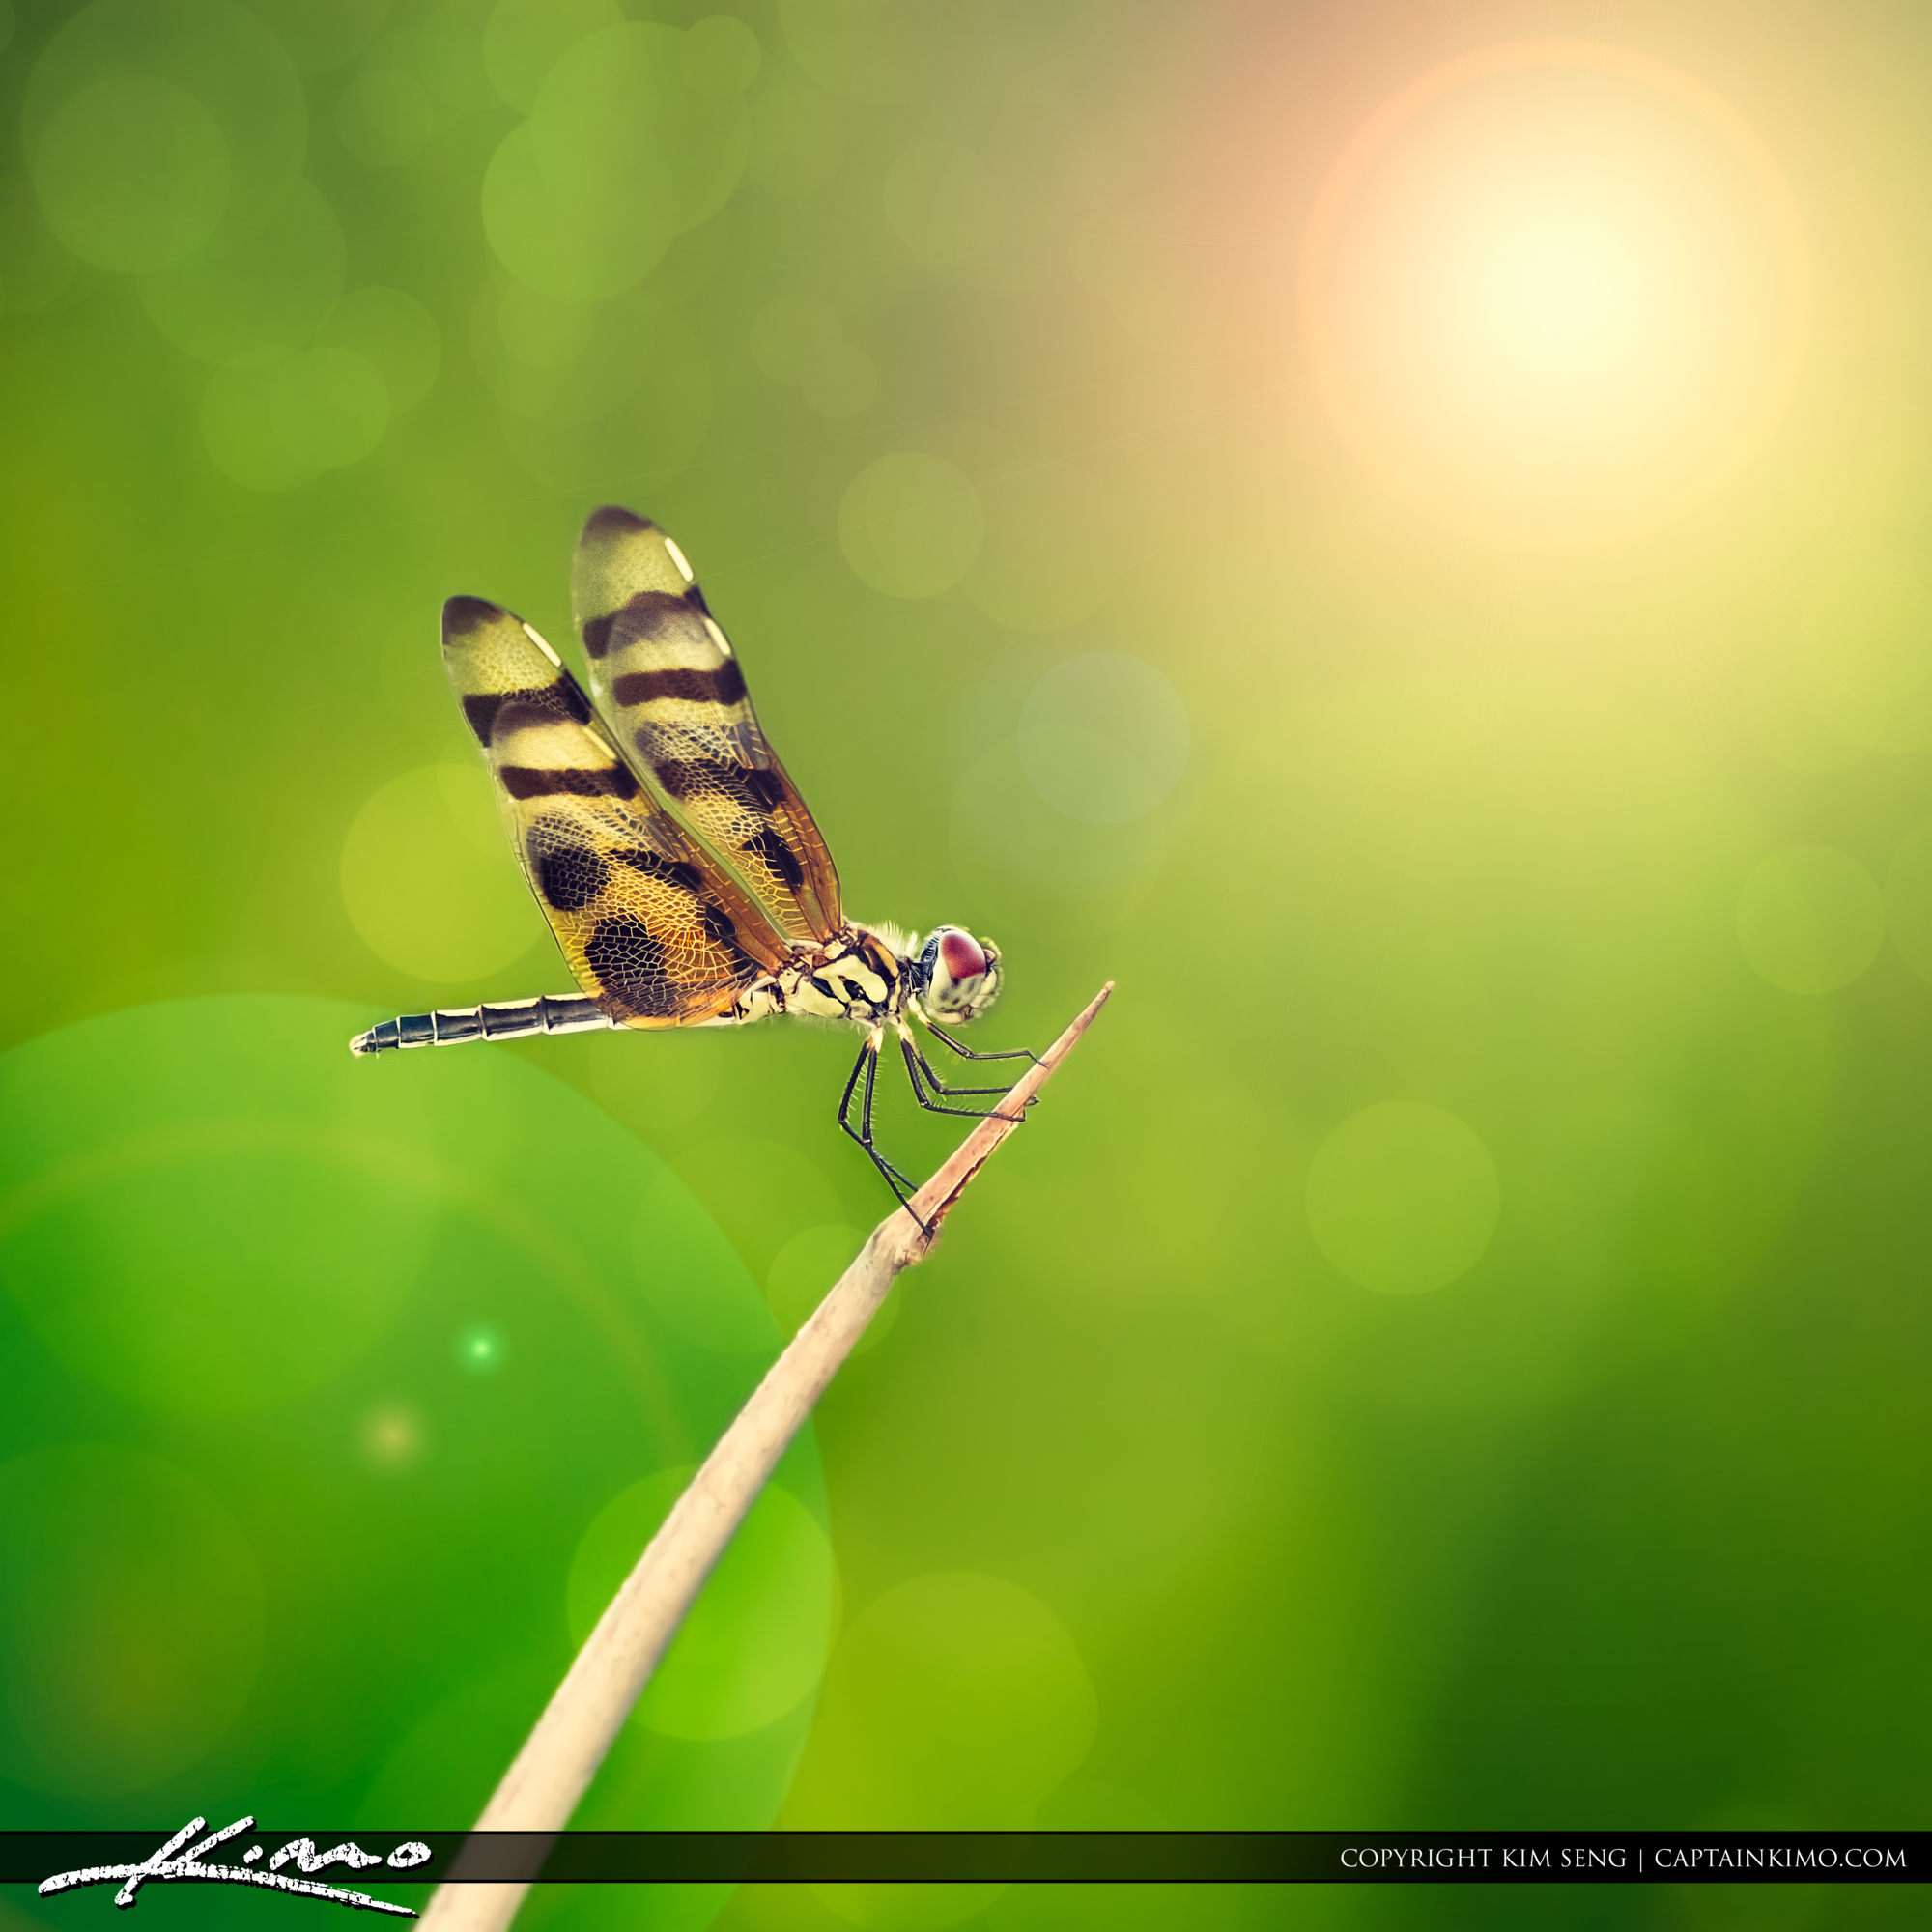 Dragonfly Green Bokeh Background Photo Art